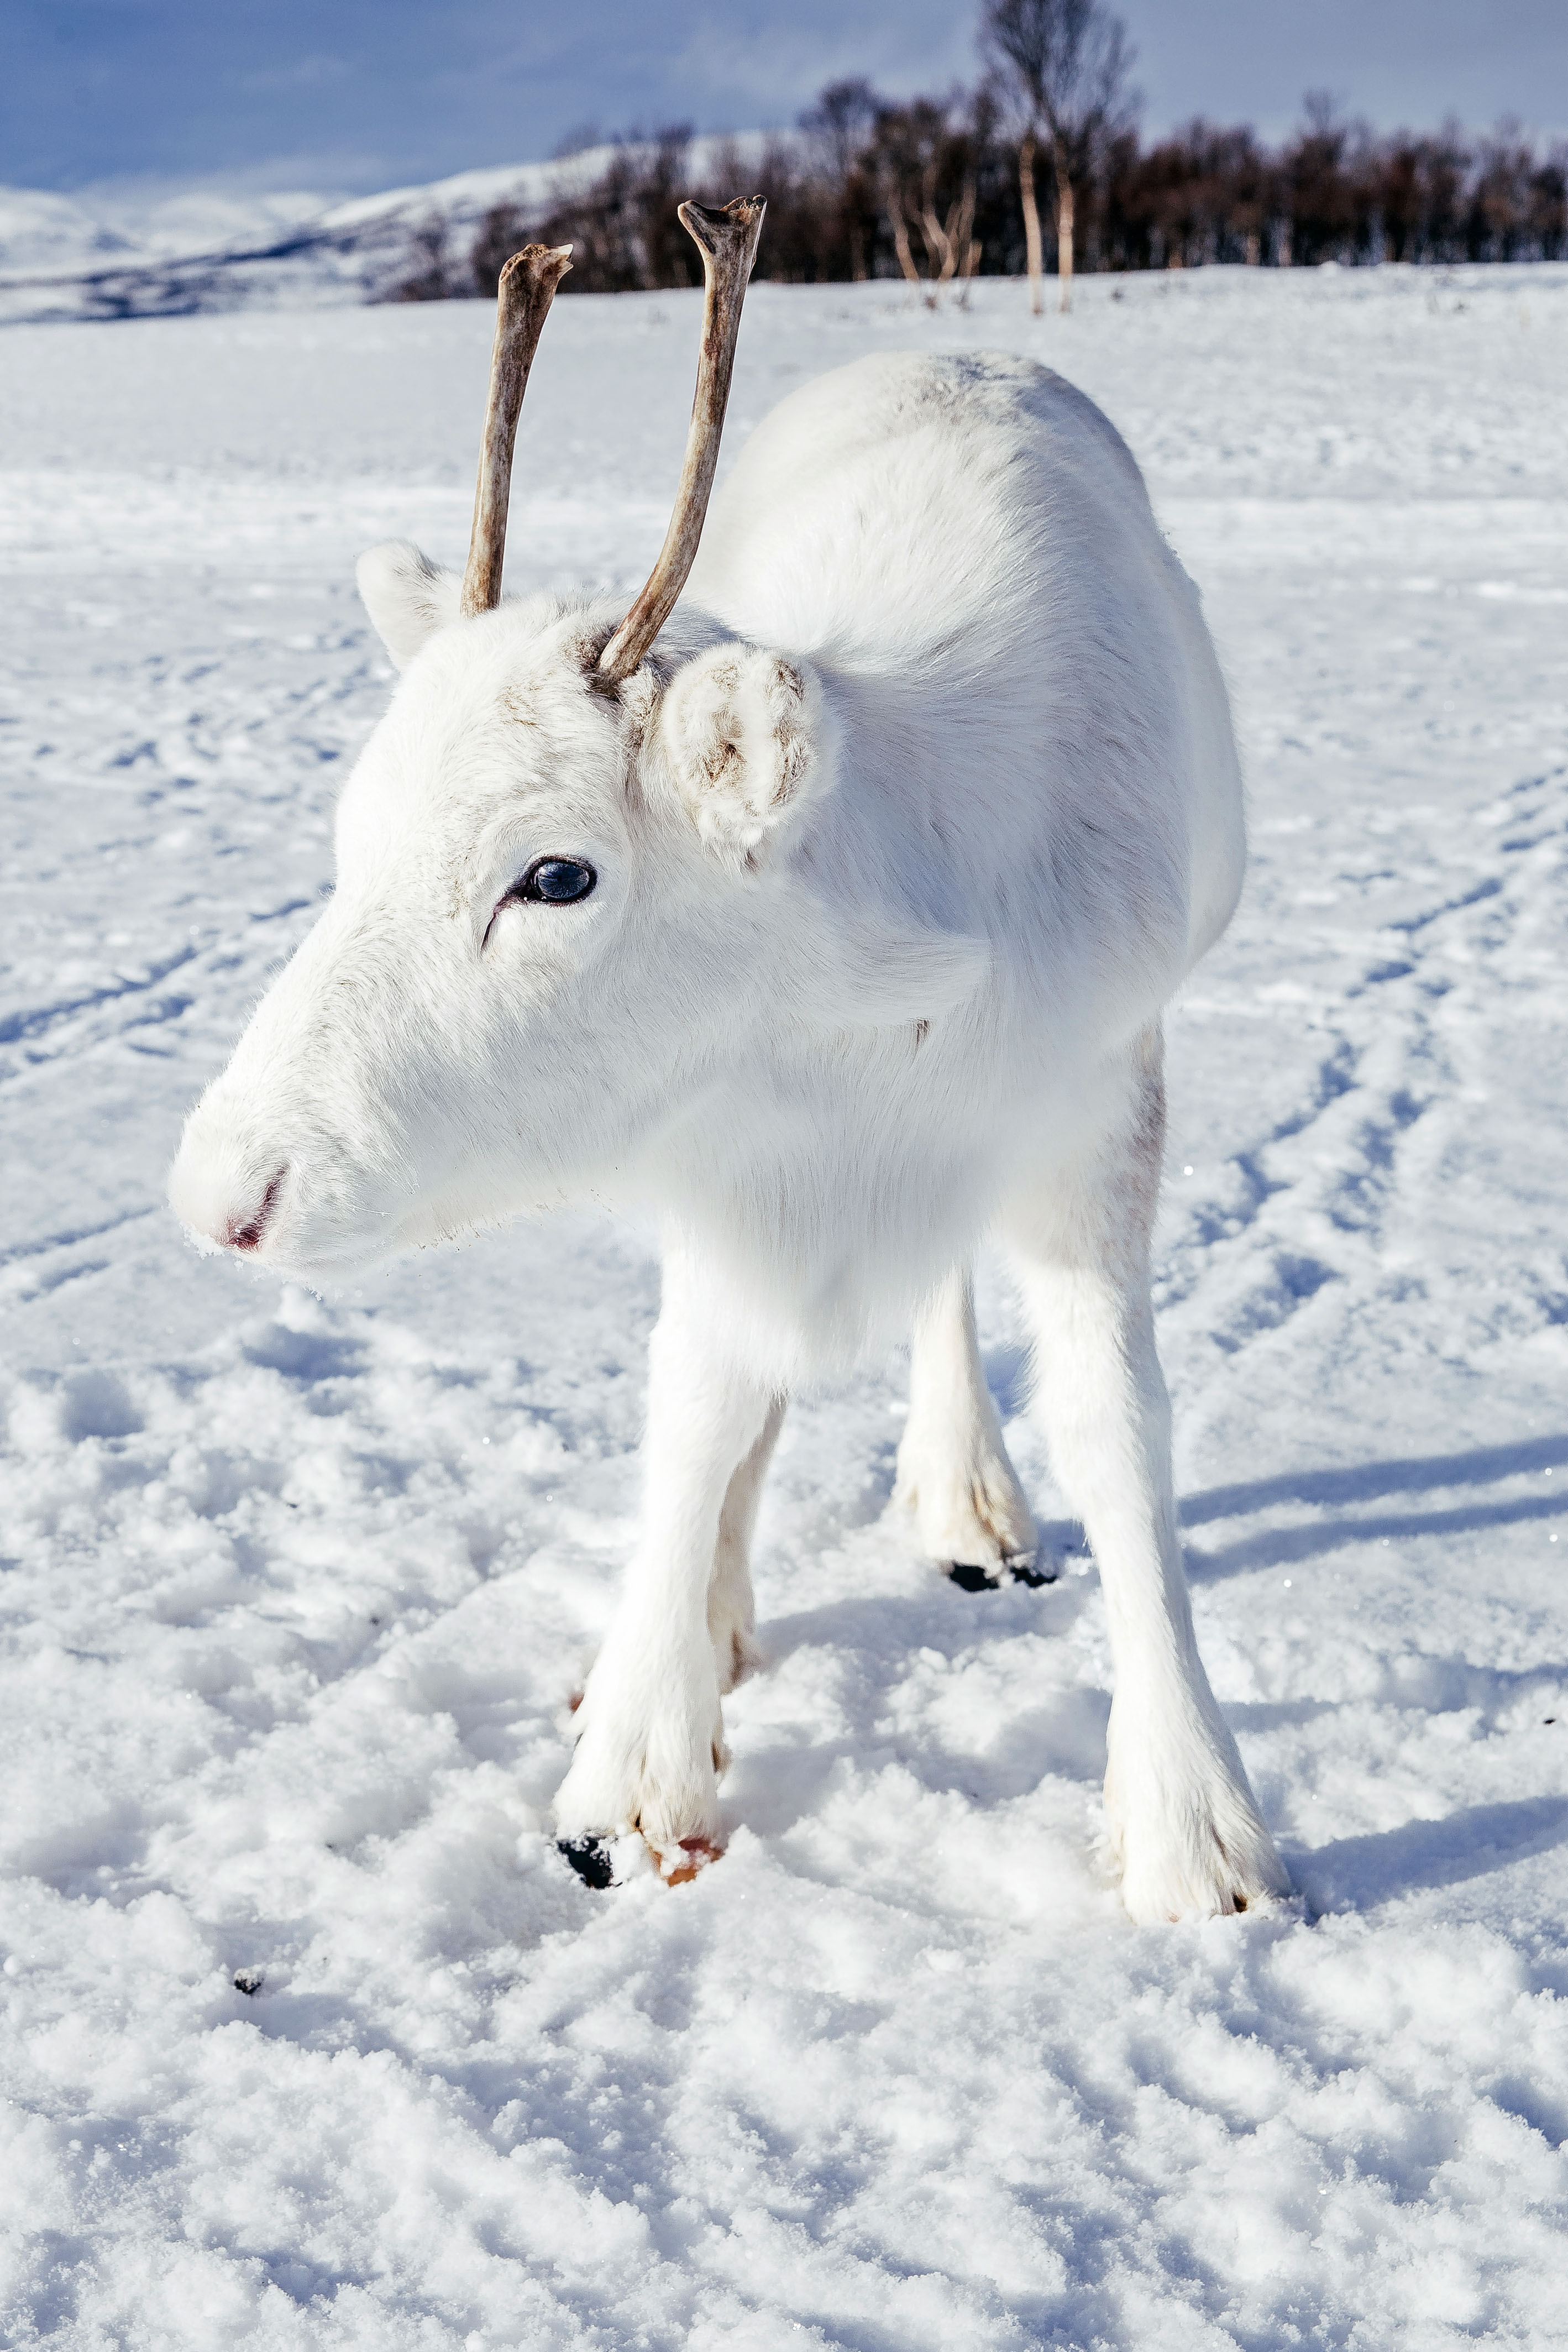 The reindeer has a rare genetic mutation meaning its fur is pure white. Credit: Caters/Mads Nordsveen